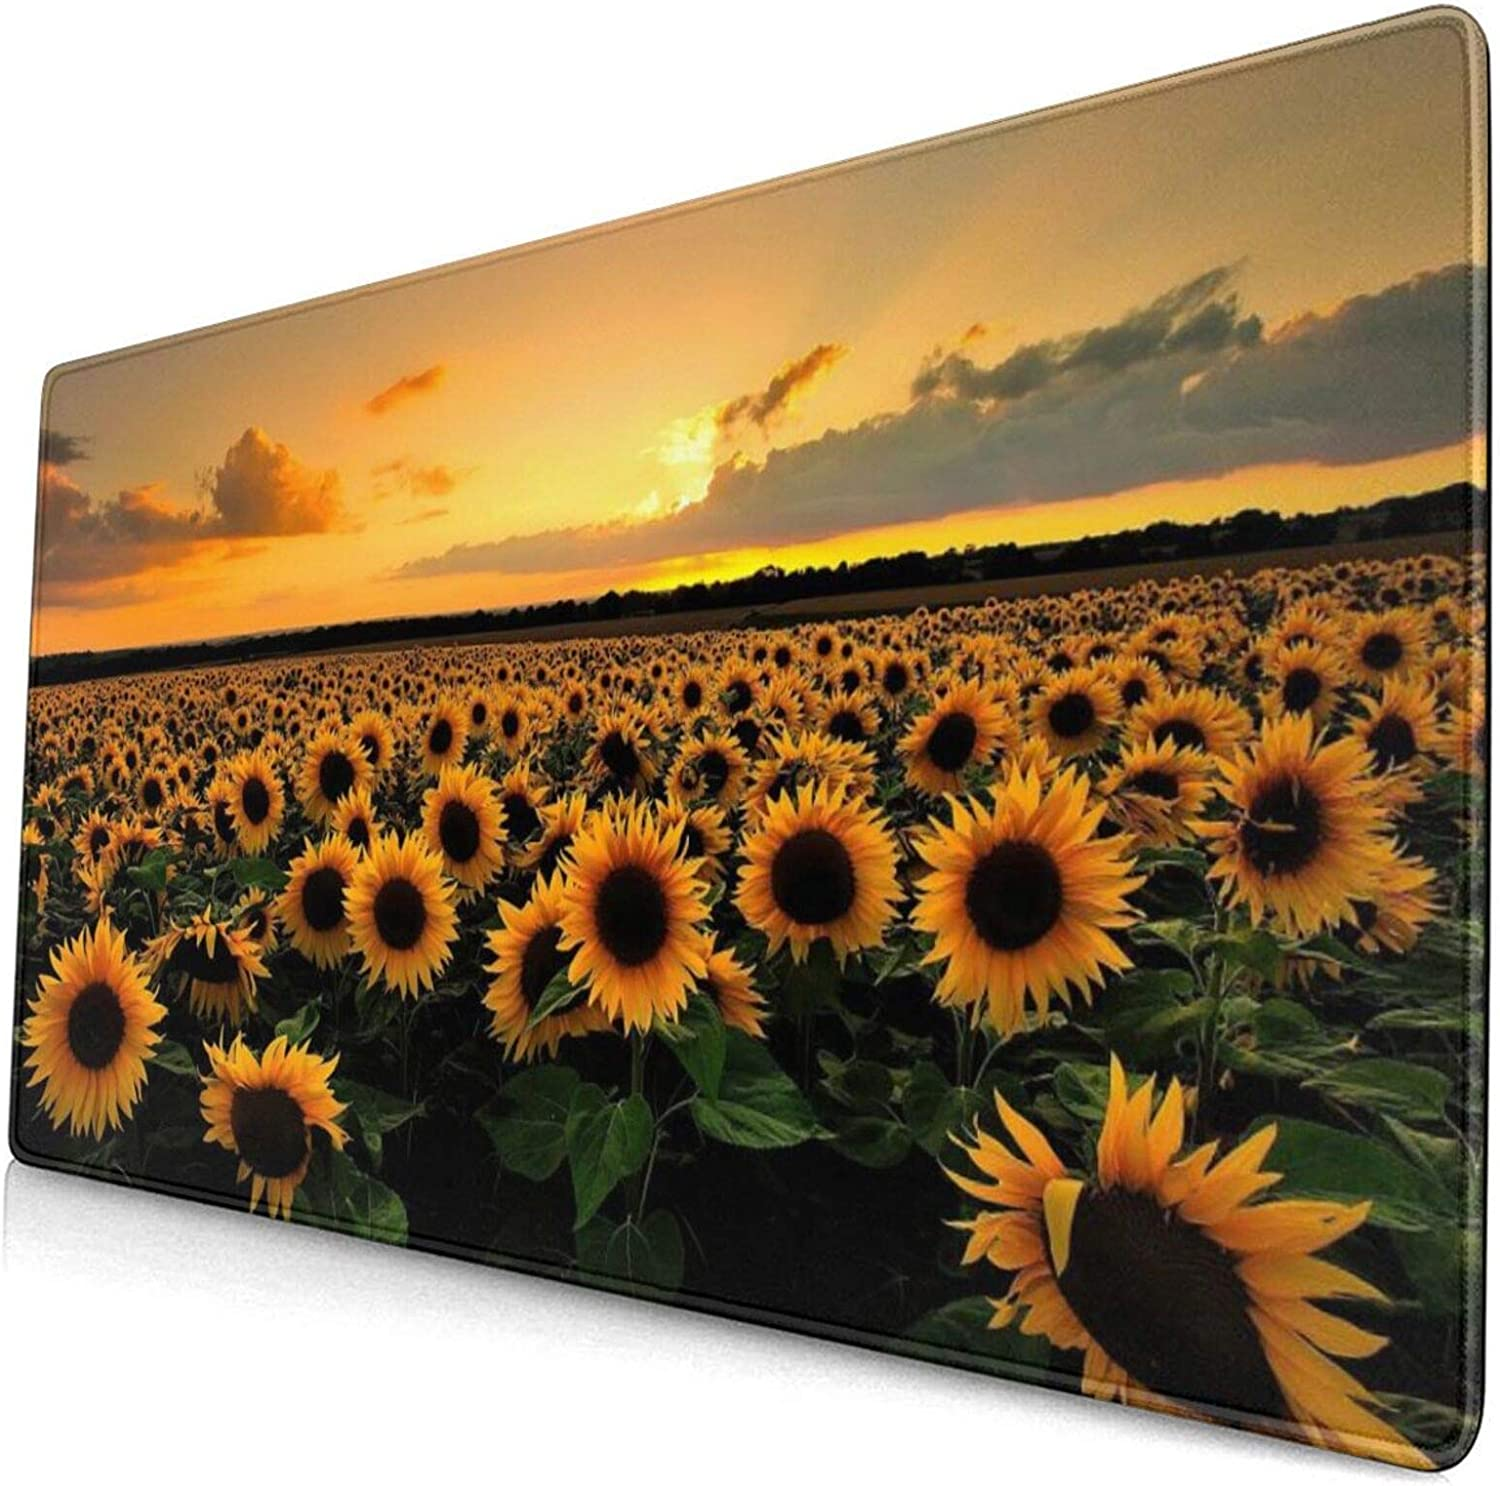 Sunflower Extended Gaming Mouse Pad with Stitched Edges,Sunset Flowers Landscape Long Mousepad (29.5x15.7in), Desk Pad Keyboard Mat, Non-Slip Base, Water-Resistant, for Work & Gaming, Office & Home